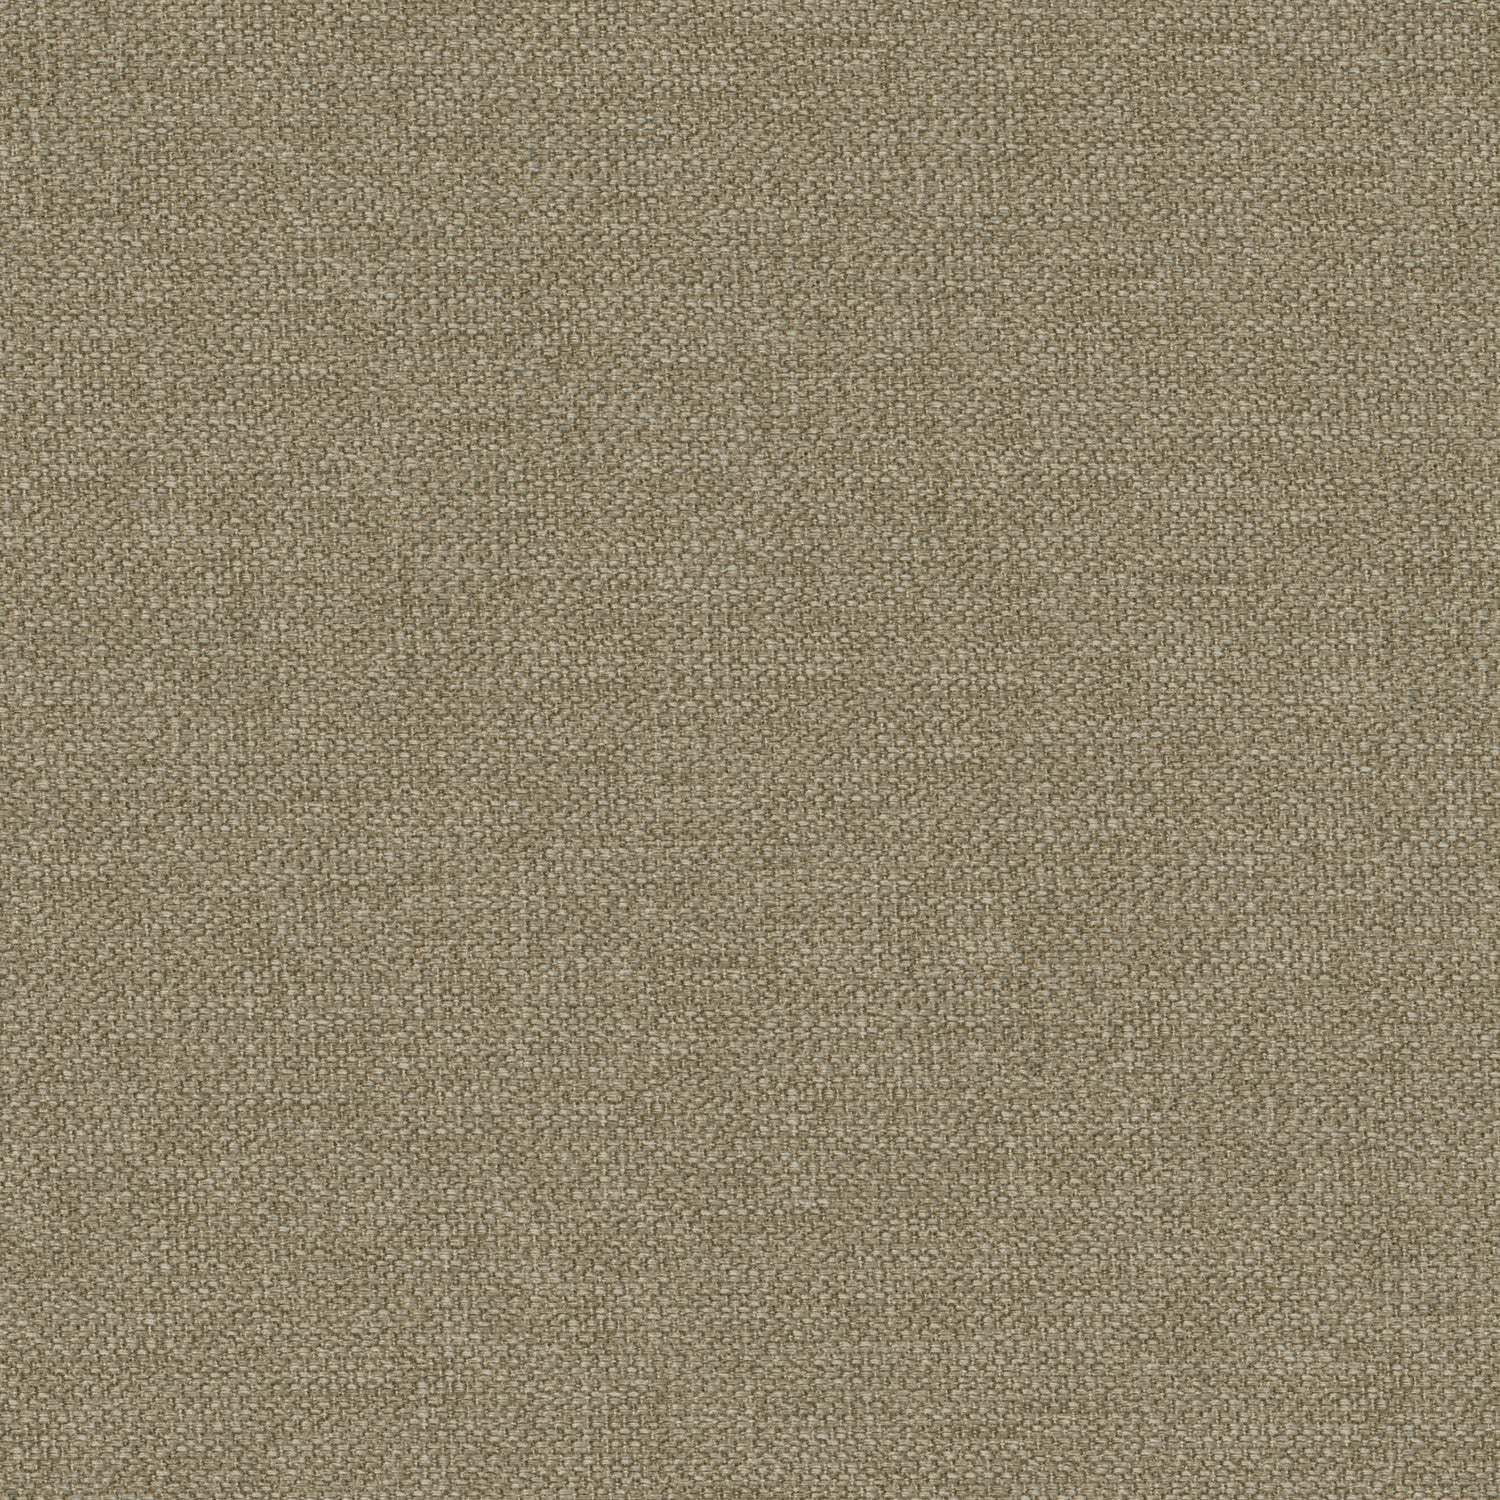 Brown plain cotton washable fabric for curtains and upholstery